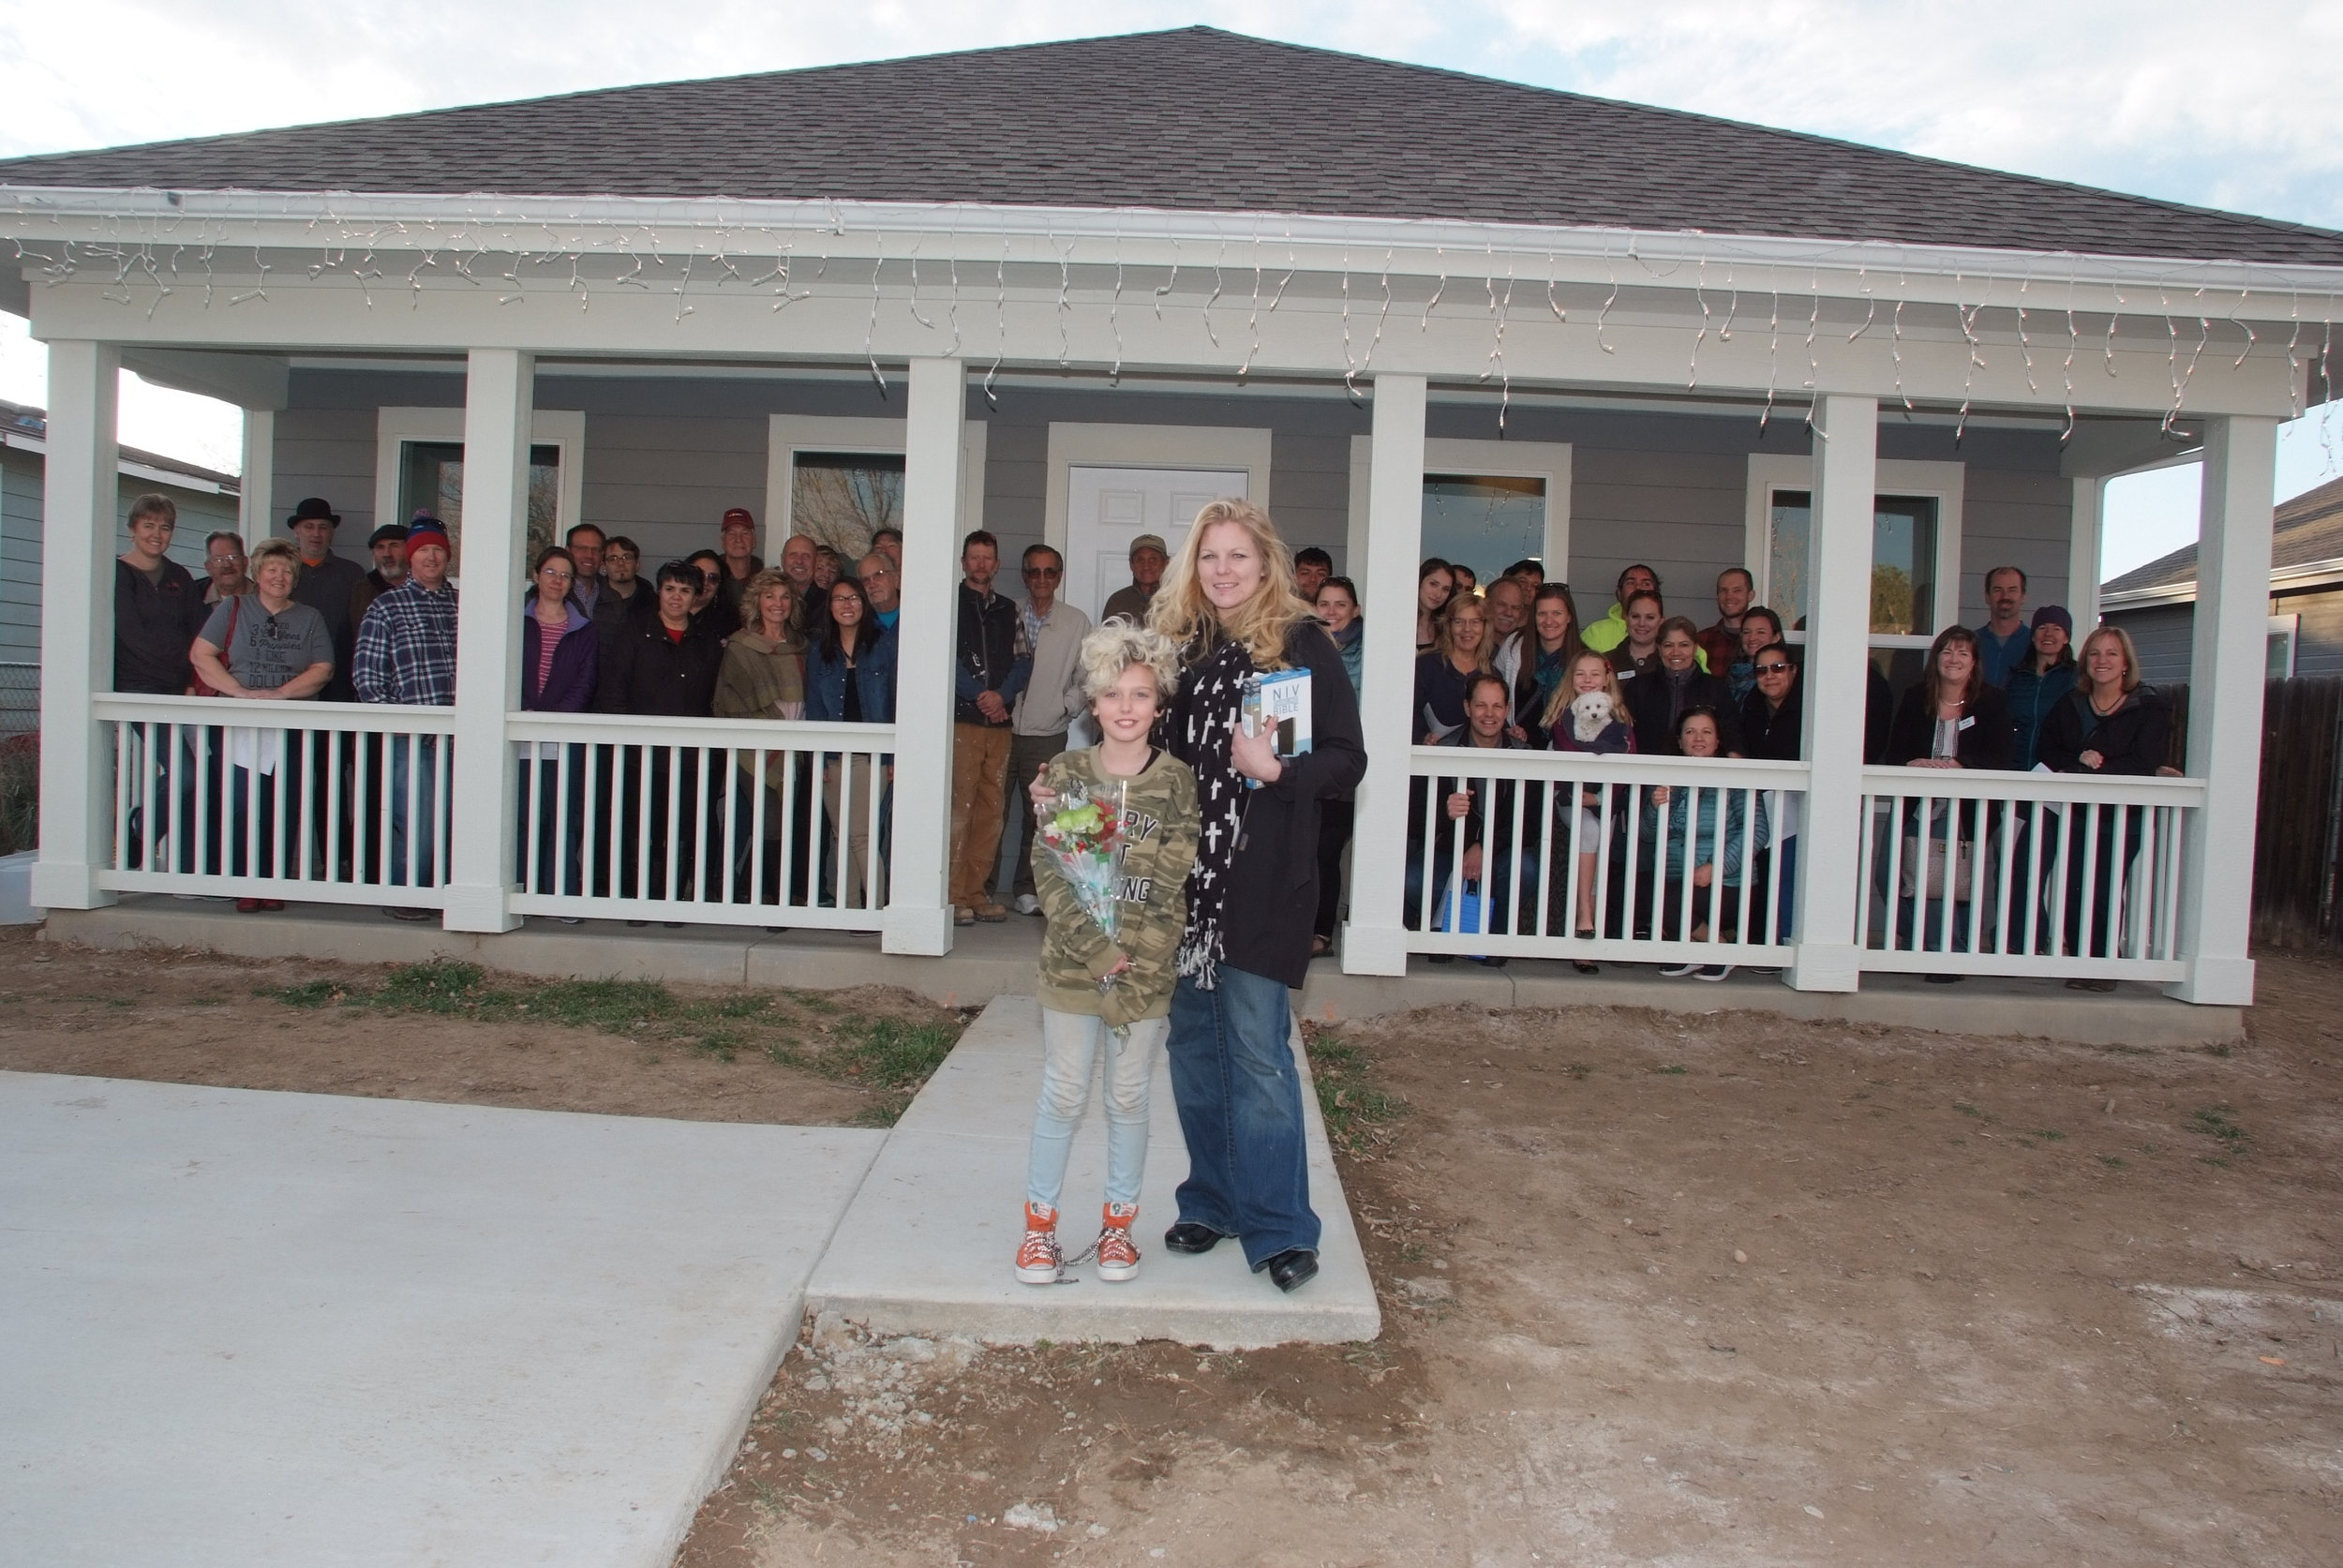 """12/28/18 - Last Friday evening, St. Vrain Habitat celebrated a home dedication  with family, friends, neighbors, volunteers, staff, board, and supporters. It truly was Christmas """"magical,"""" complete with carols, cocoa, and cookies. Congratulations Ericksons! Welcome to your new home!"""